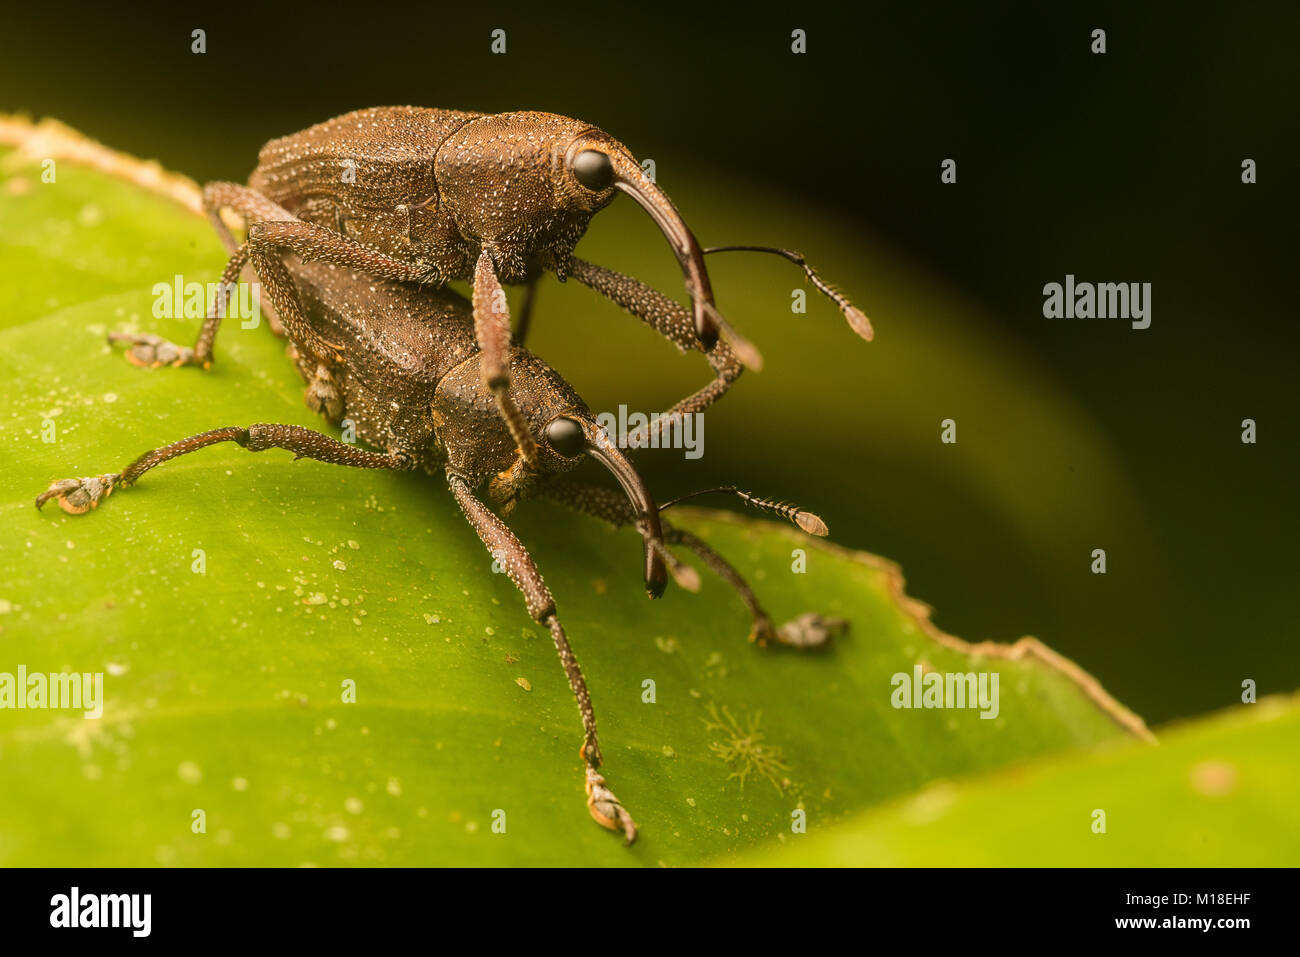 Two weevils mating in the Amazon Jungle. - Stock Image